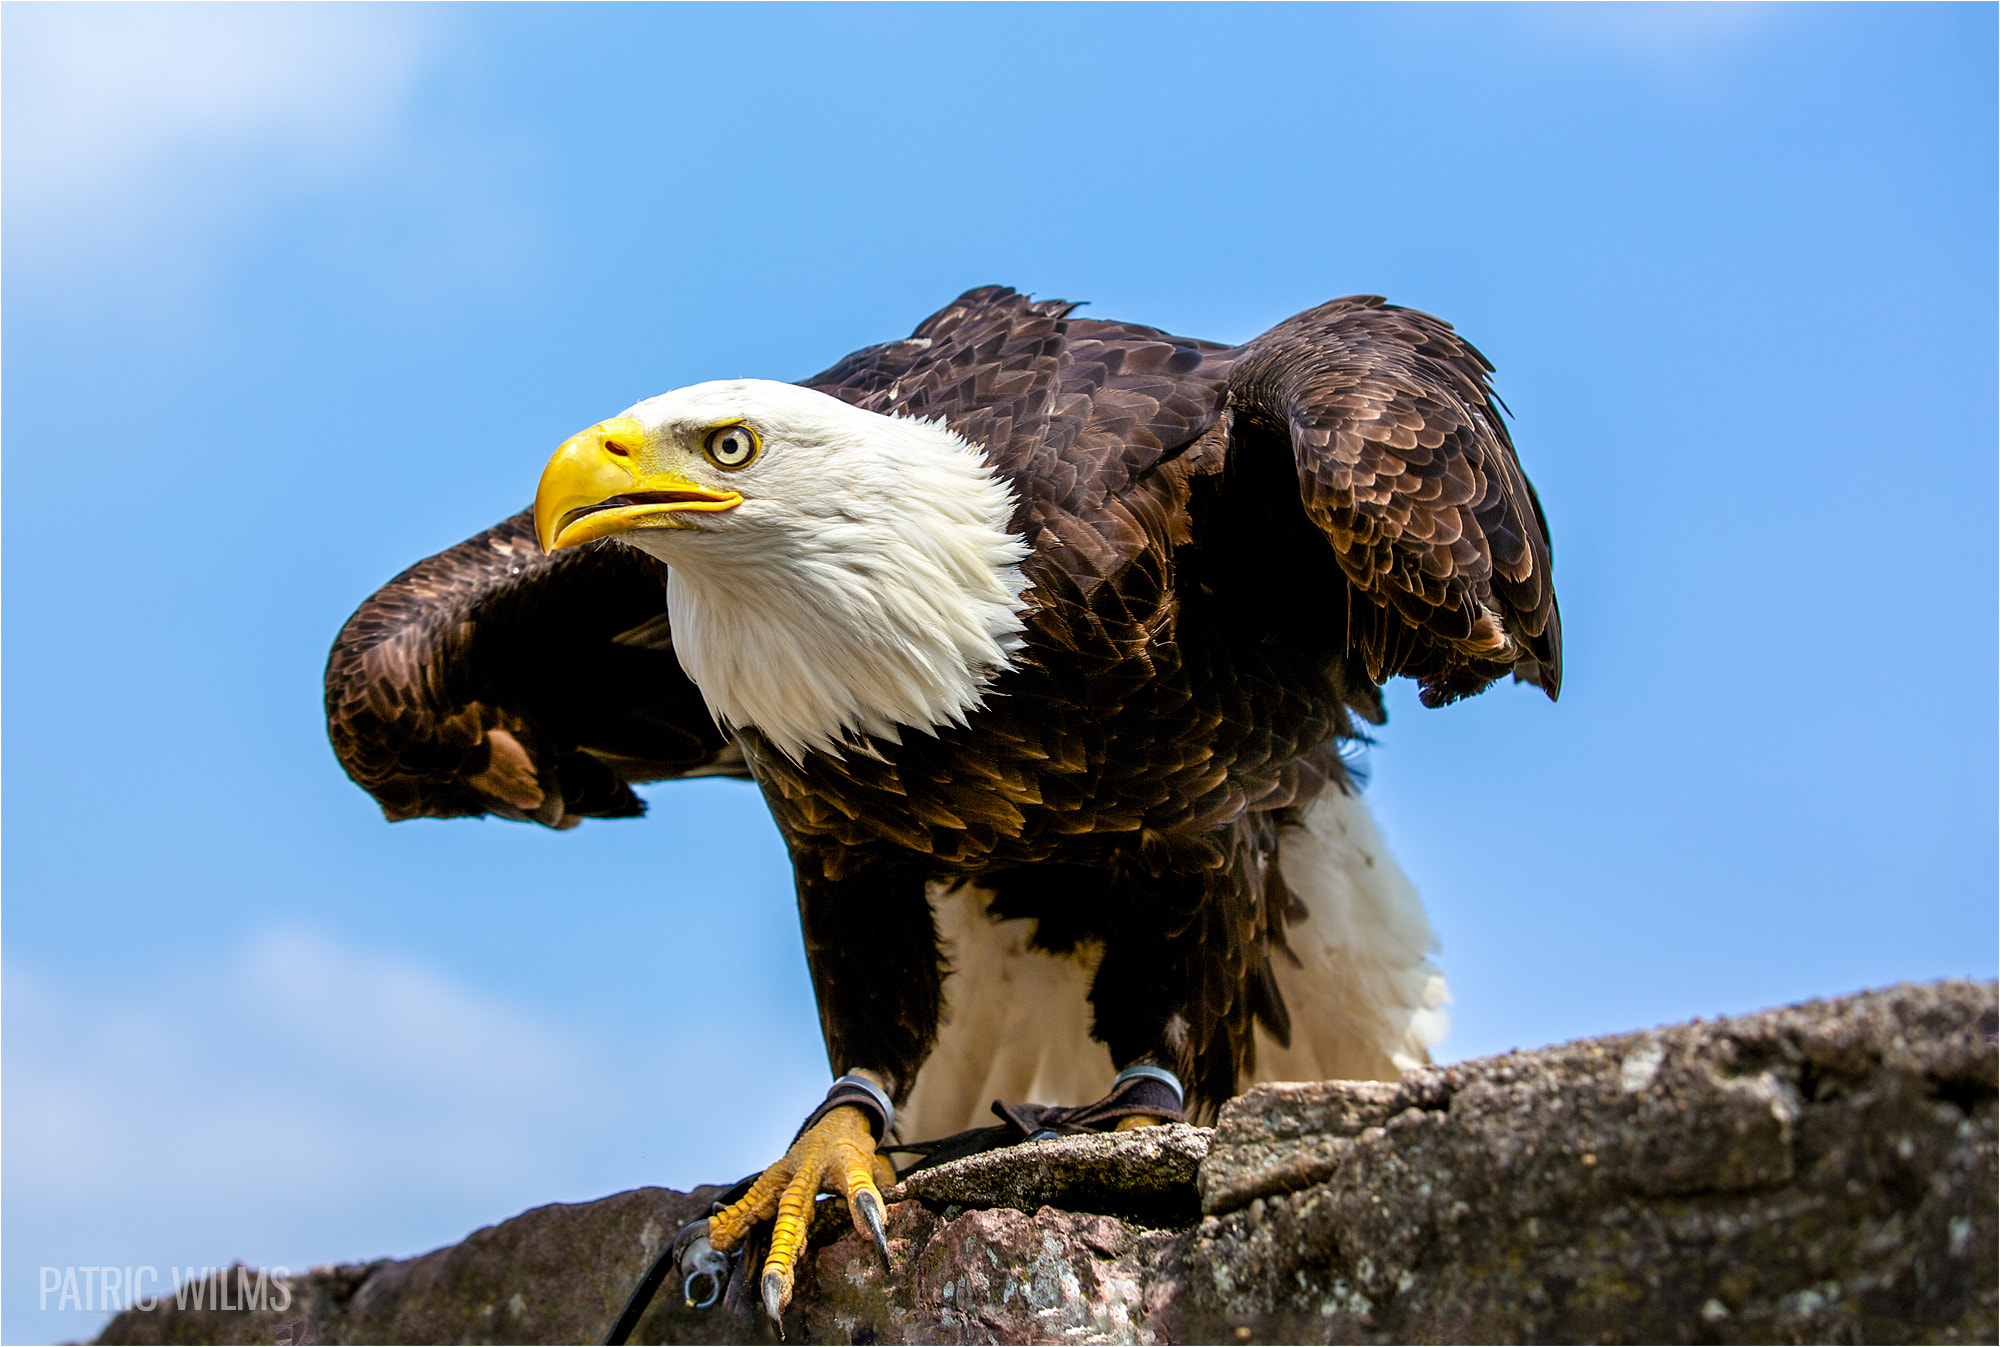 Photograph Eagle by Patric Wilms on 500px